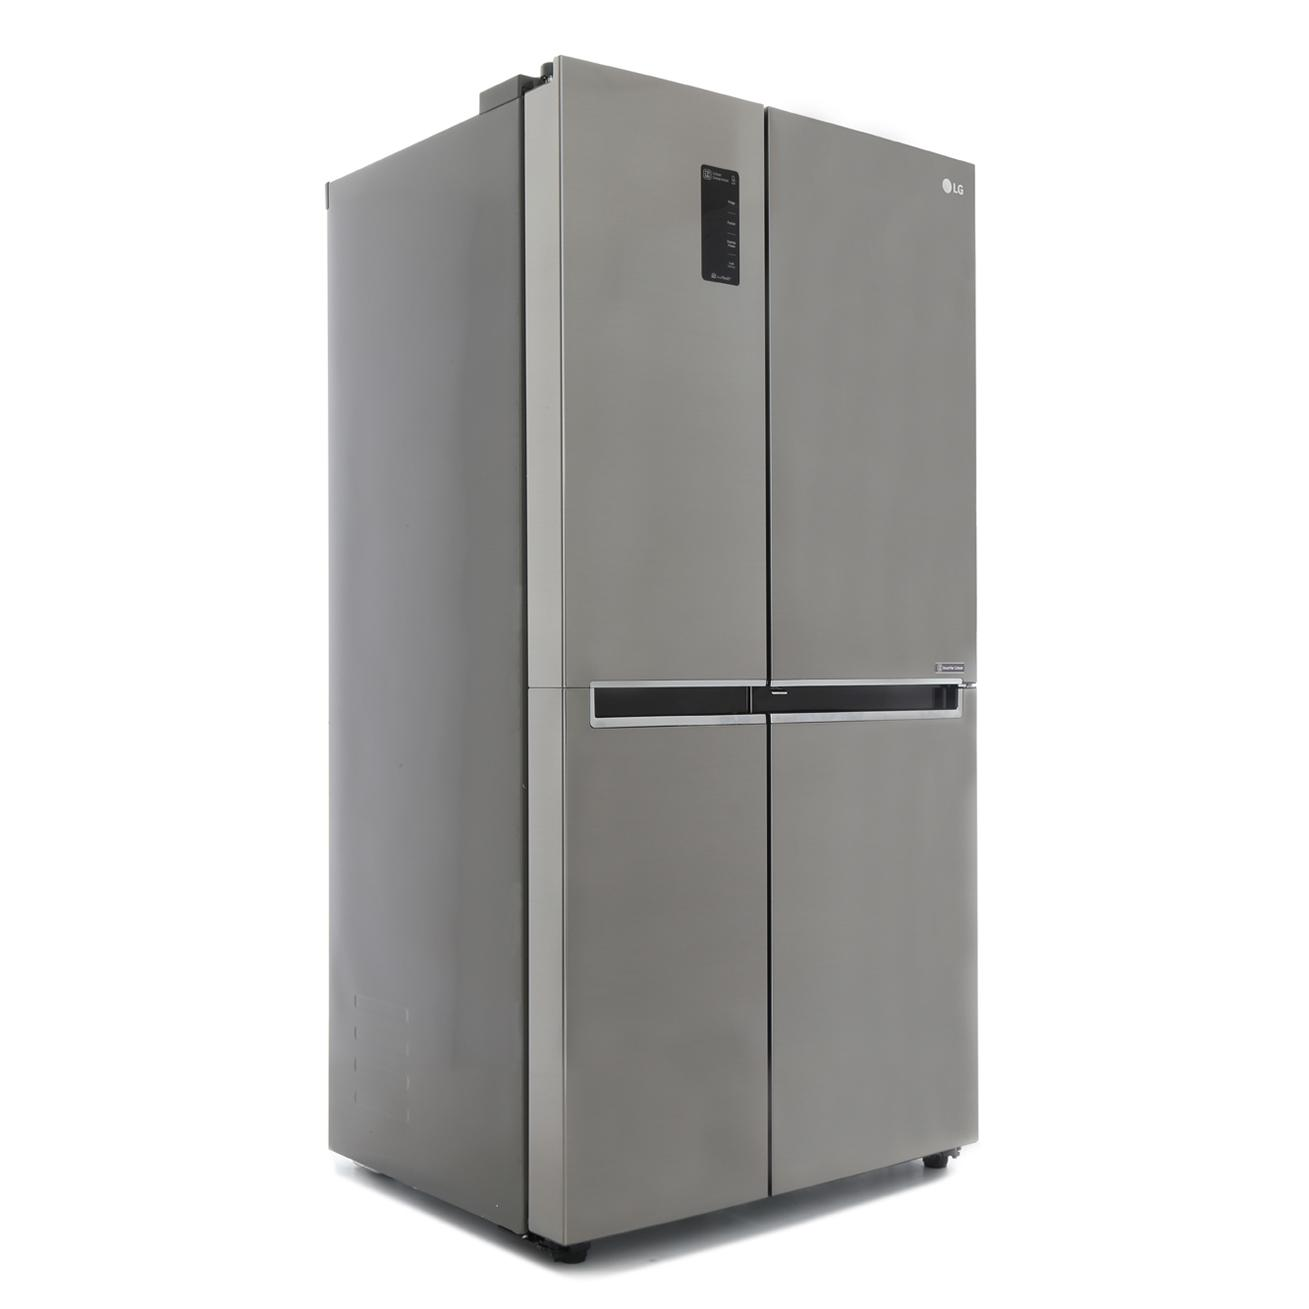 LG GSM760PZXZ American Fridge Freezer